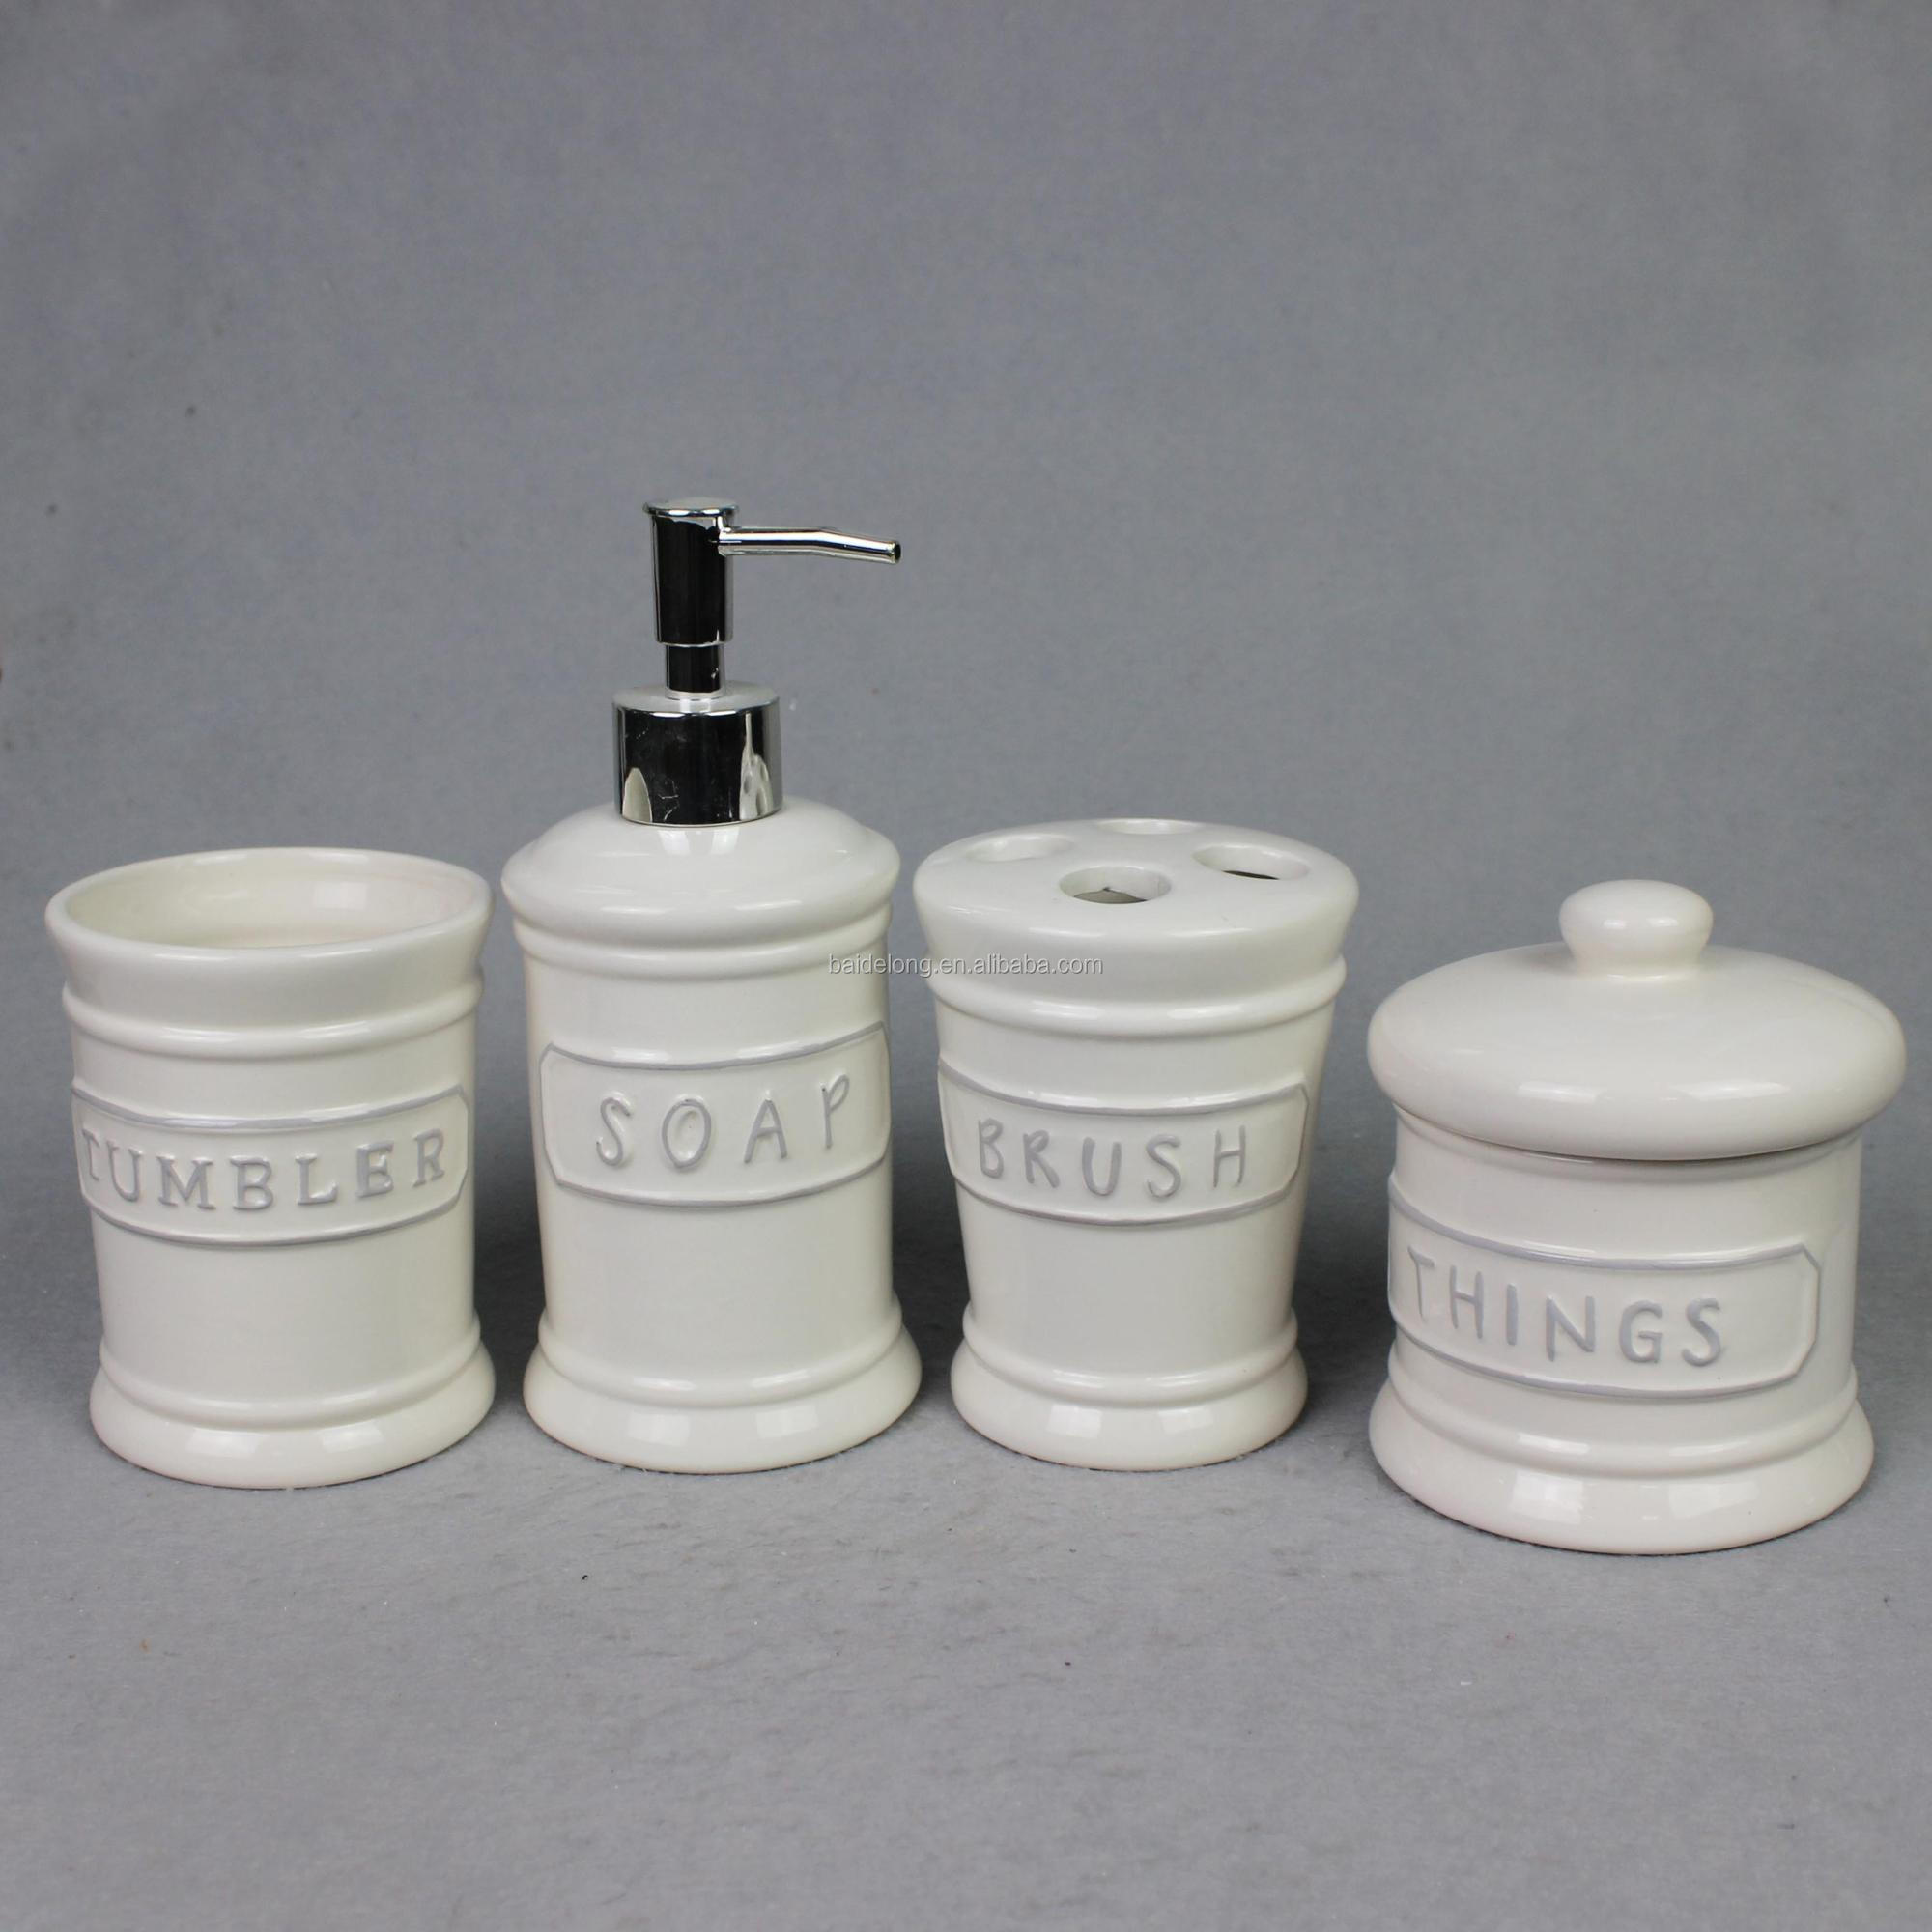 Emboss Ceramic Bathroom Accessory Set W Toothbrush Holder Tumbler